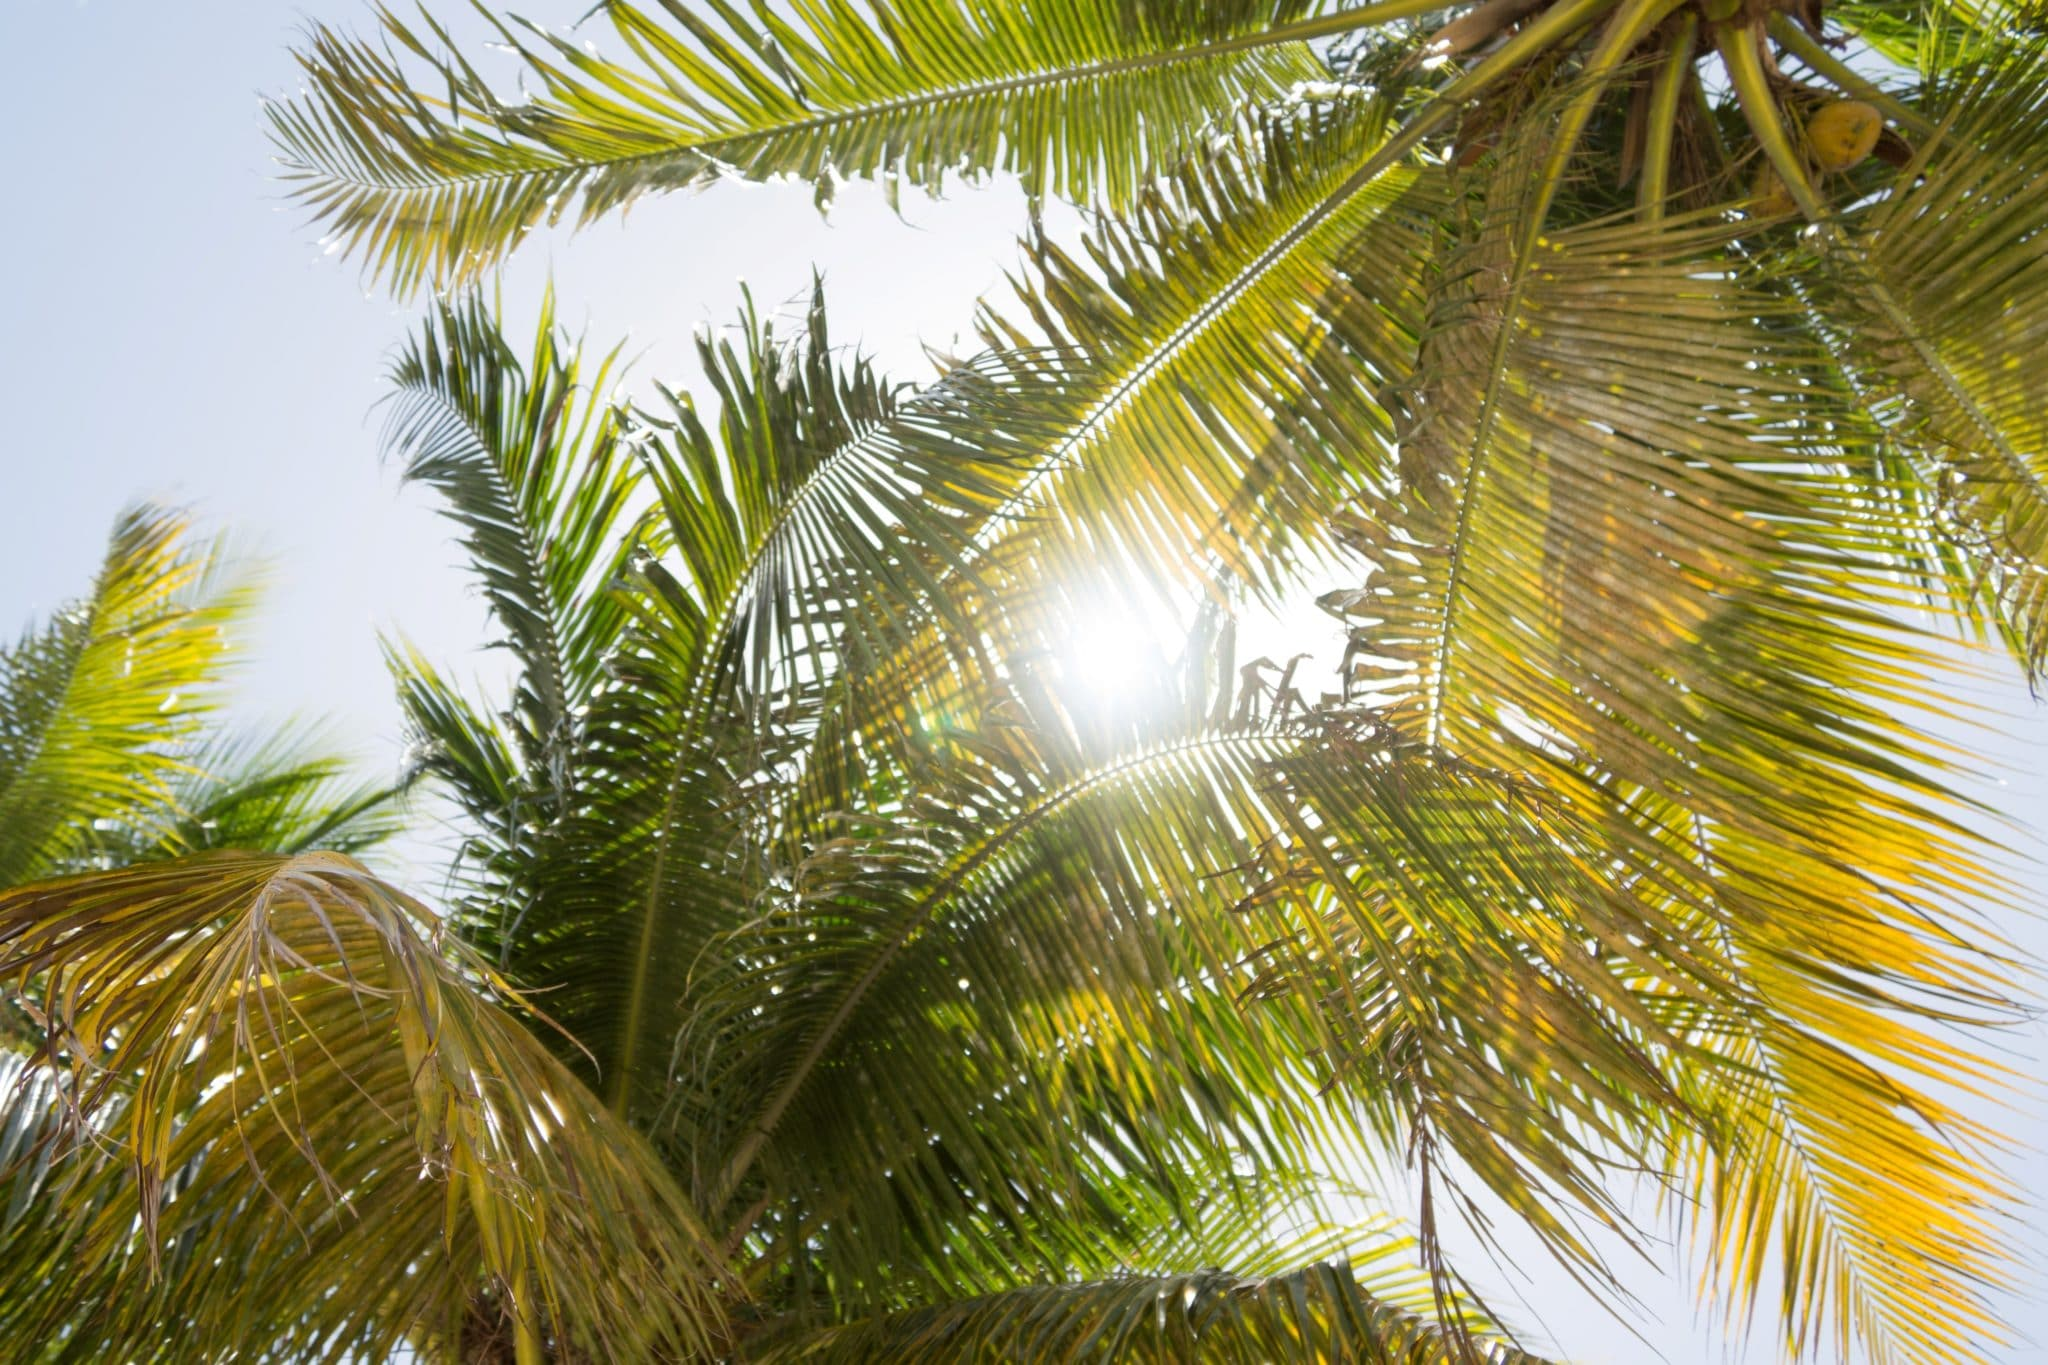 Florida palm trees with sunny, blue skies for the South Florida Classroom Training